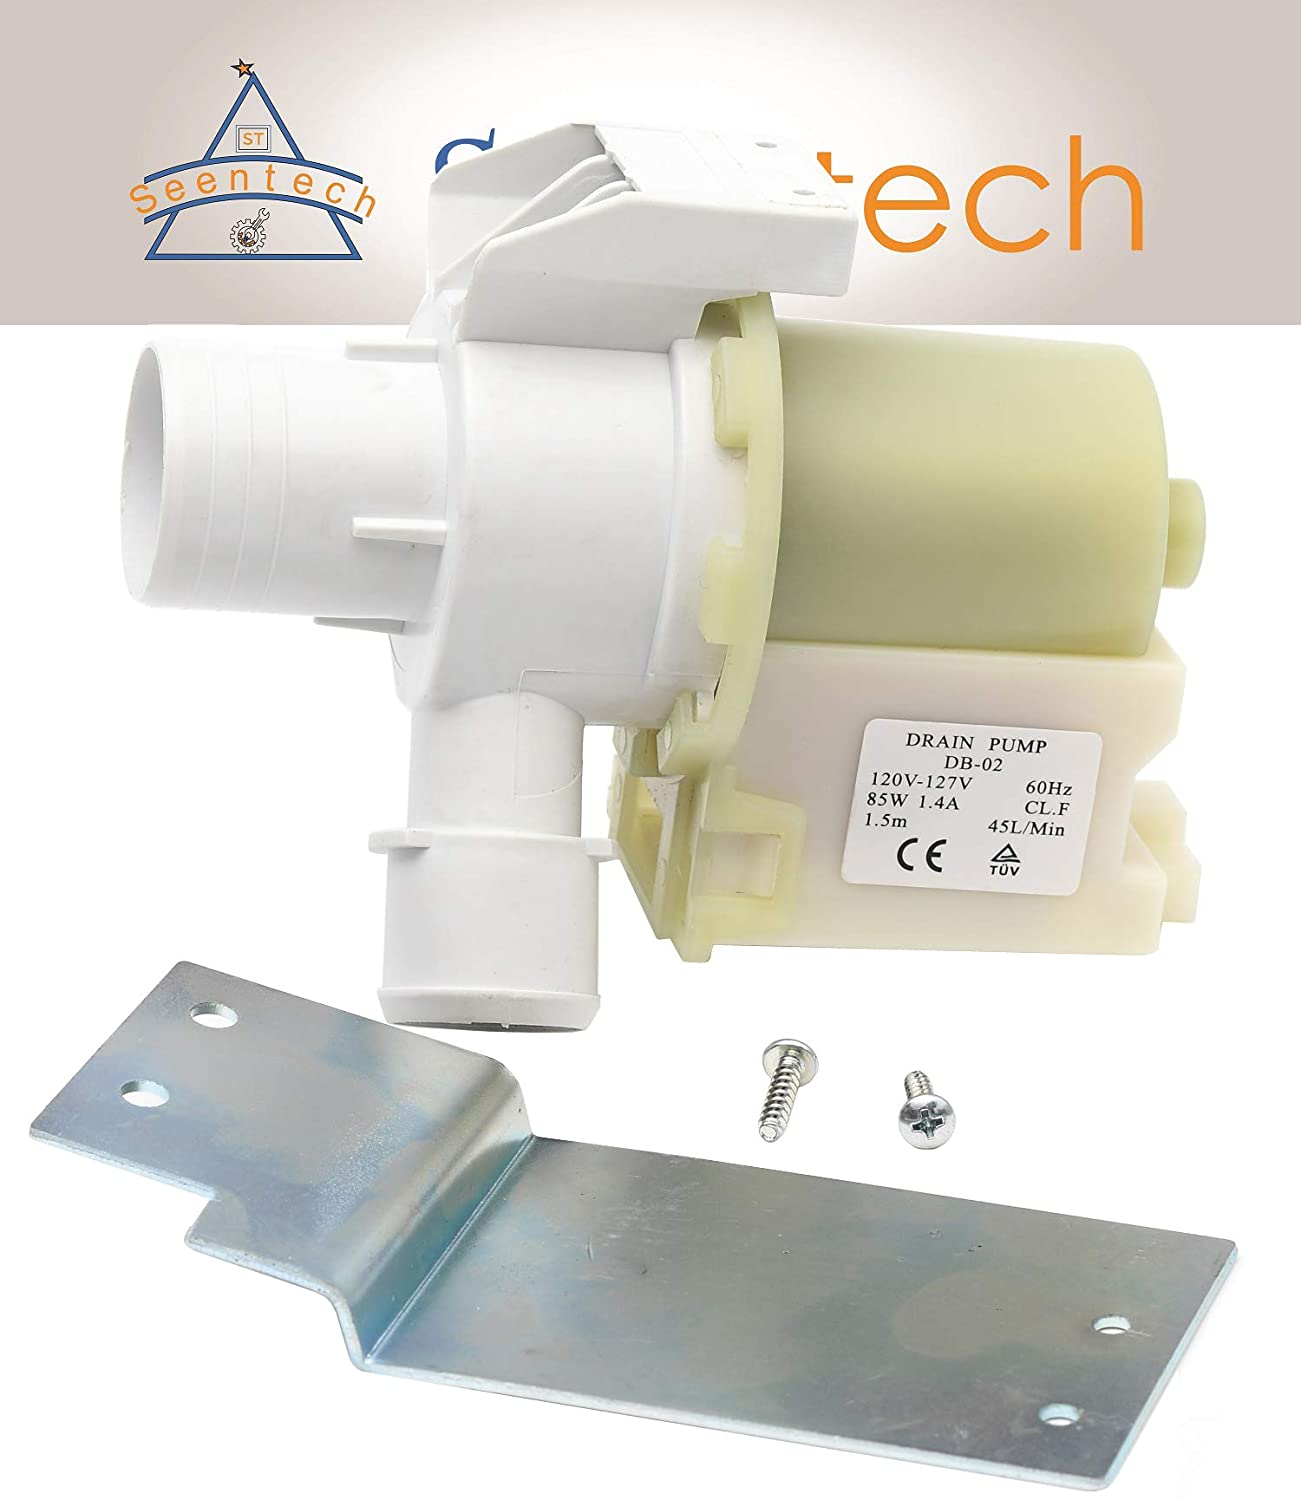 GE WH23x10030 washer drain pump - Exact fit for GE, Hotpoint washers: Replace Drain Pump AP5803461, PS8768445, WH23X10003, WH23X10013, WH23X0081, WH23X10030 by Seentech